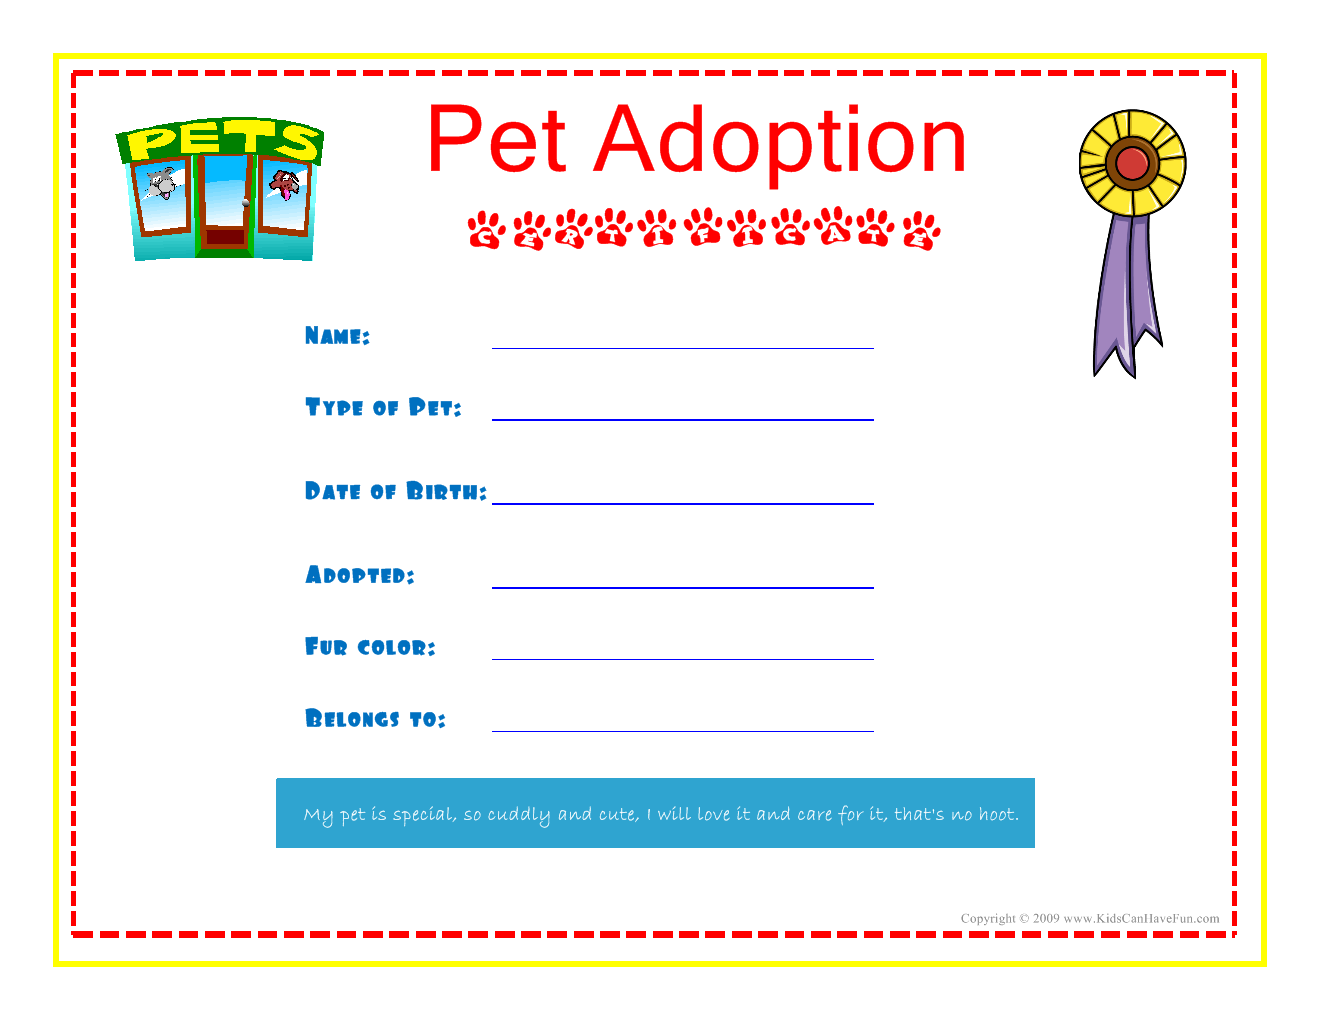 Pet adoption certificate for the kids to fill out about their pet pet adoption certificate for the kids to fill out about their pet yadclub Gallery